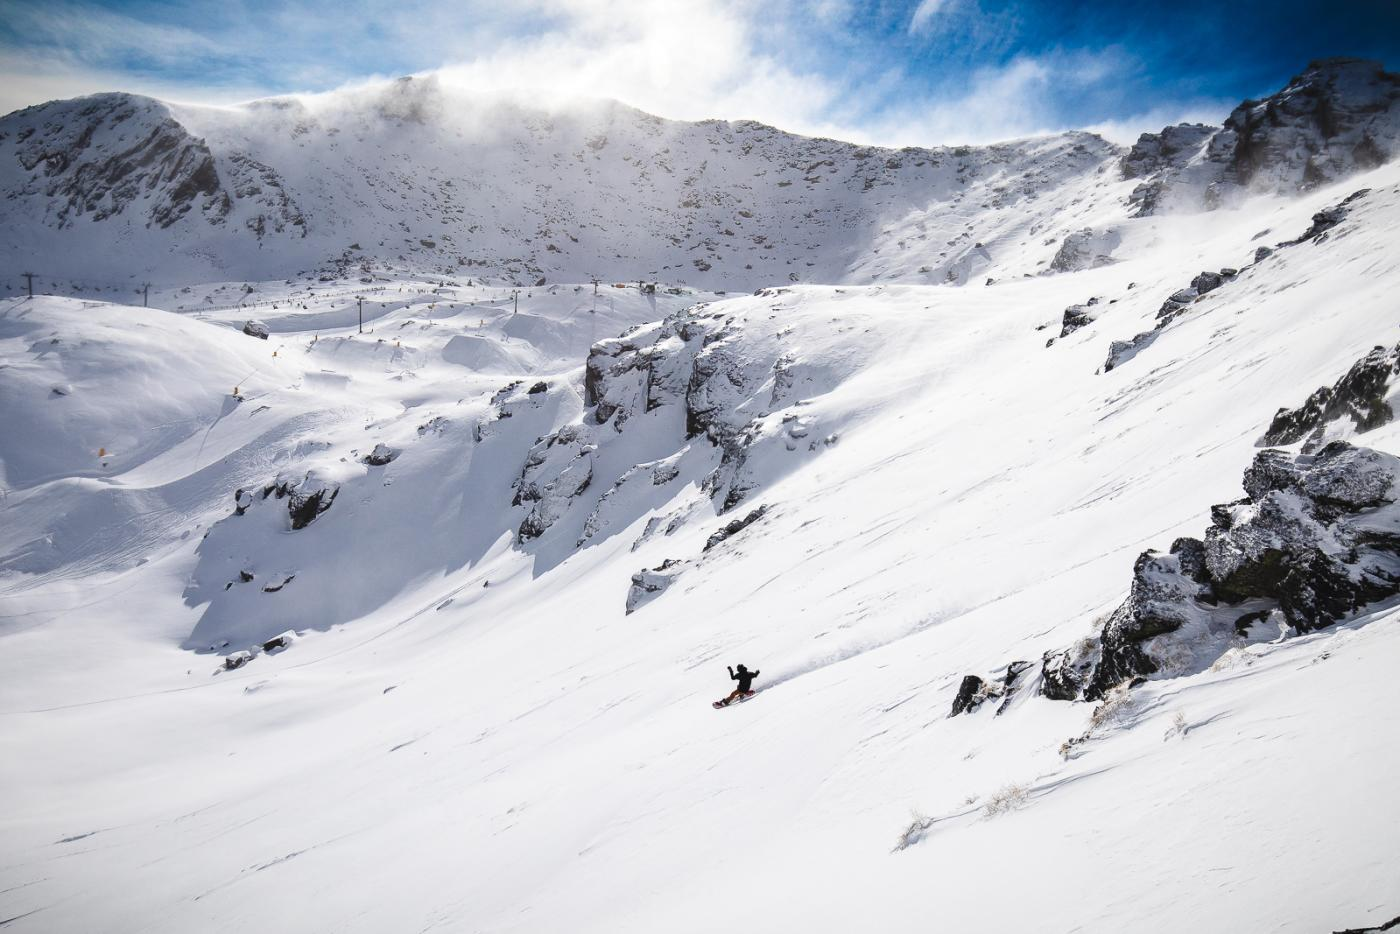 The Remarkables snowboarder in action